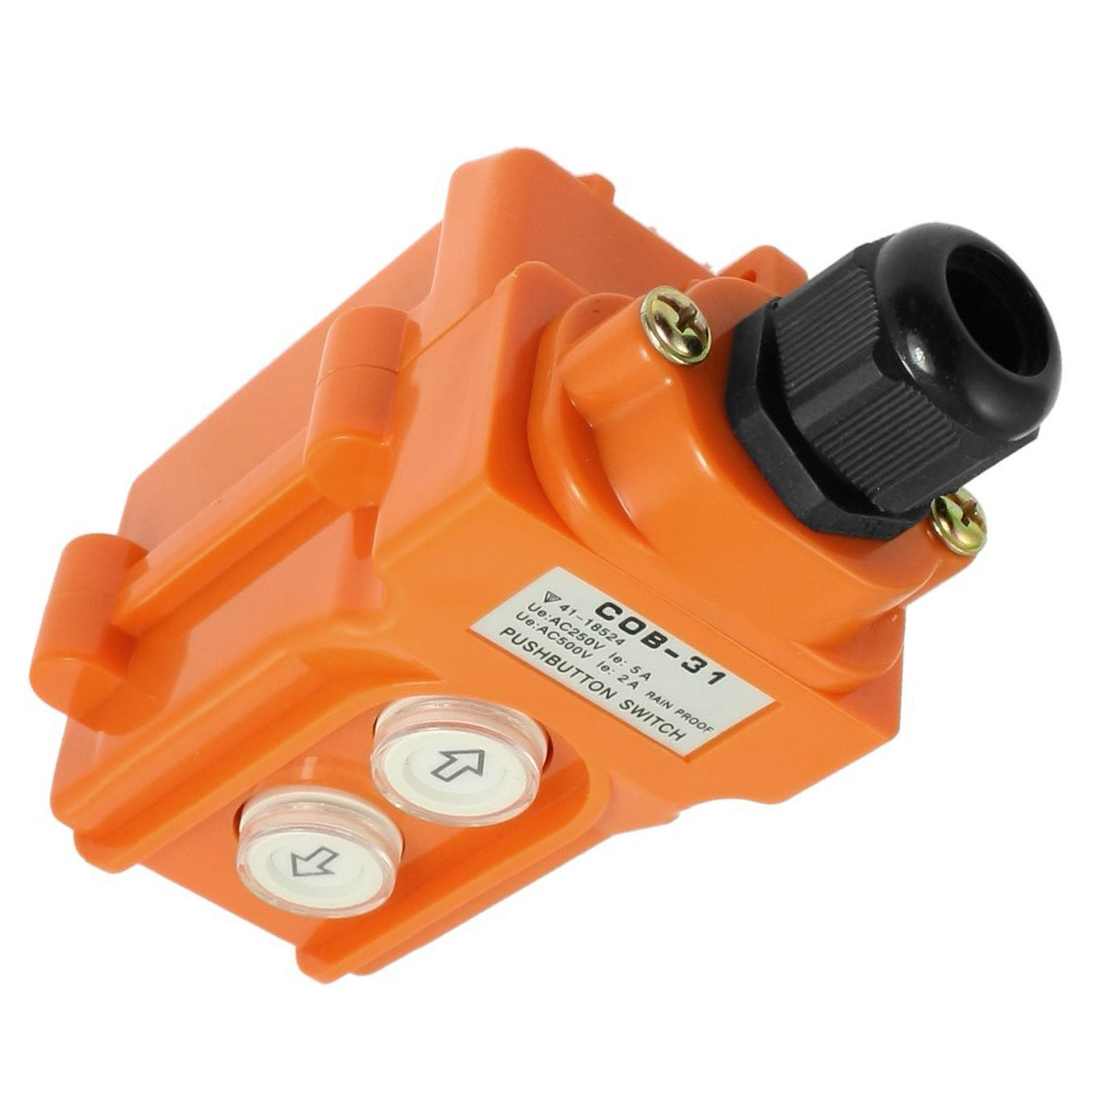 WSFS Hot Up Down Button Hoist Pushbutton Switch 10A Ith ...